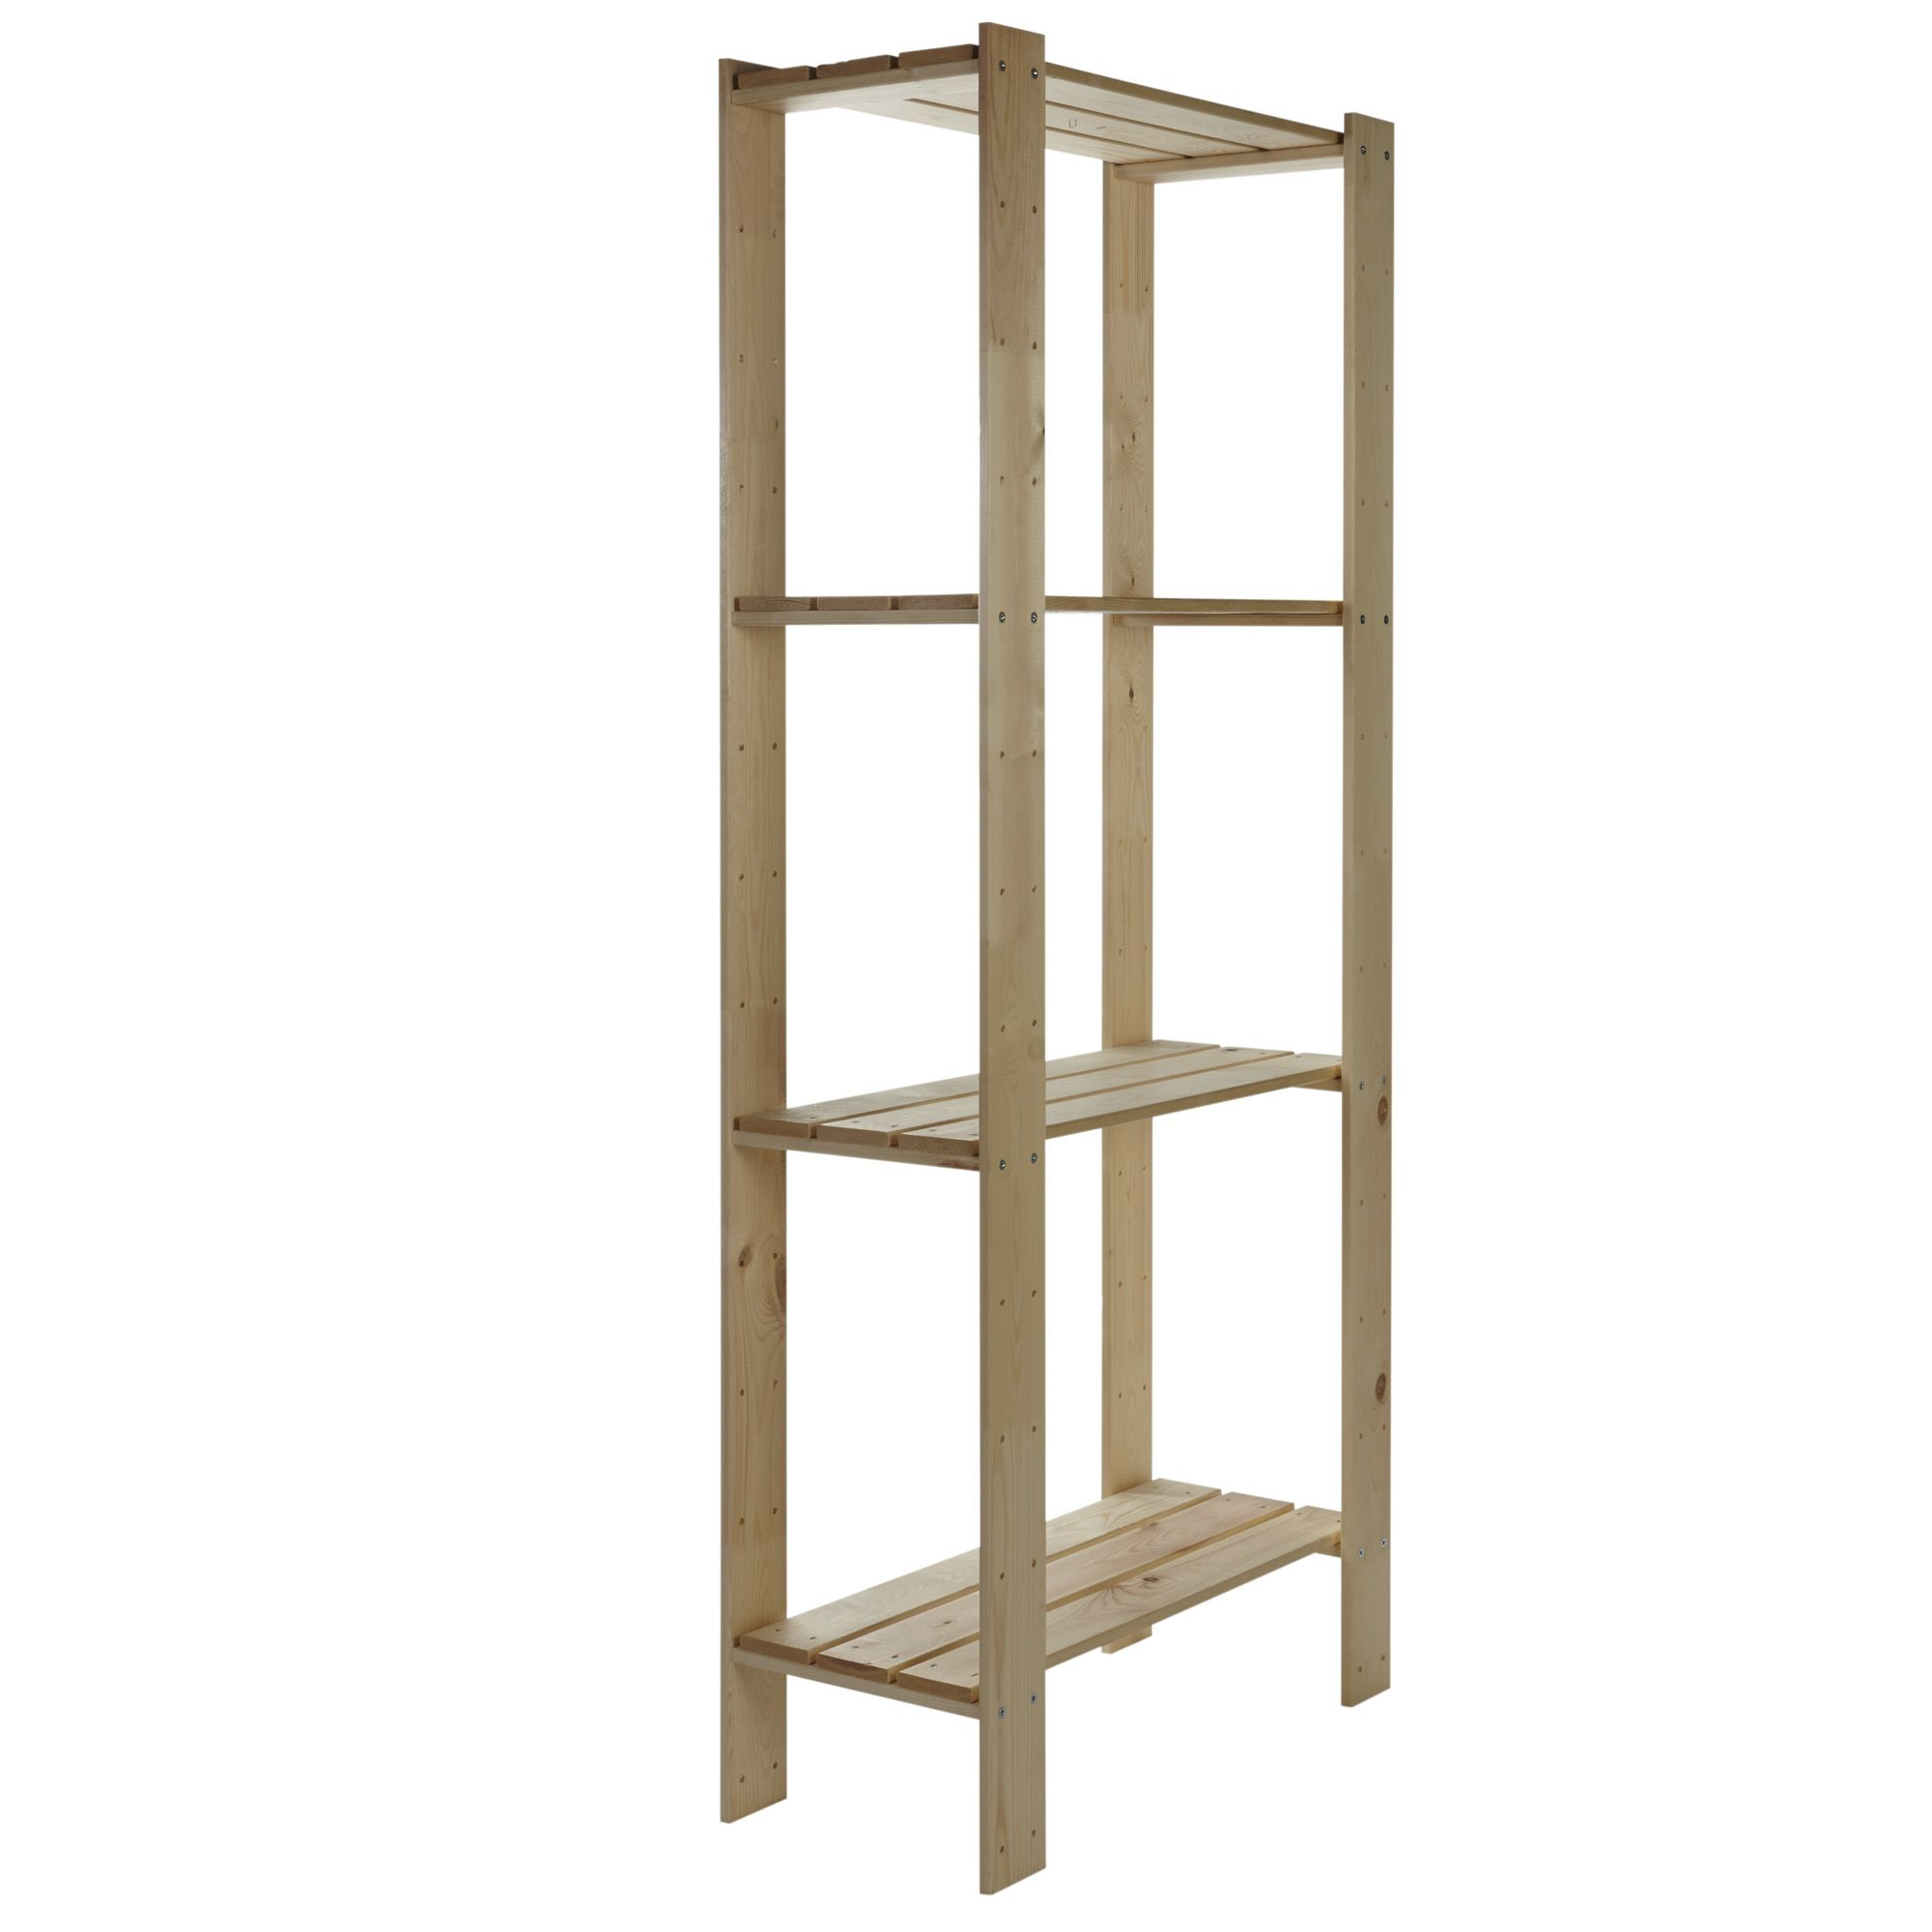 Bathroom Cabinets Uk Bq Form Shelving Unit H1740mm W750mm D340mm Departments Diy